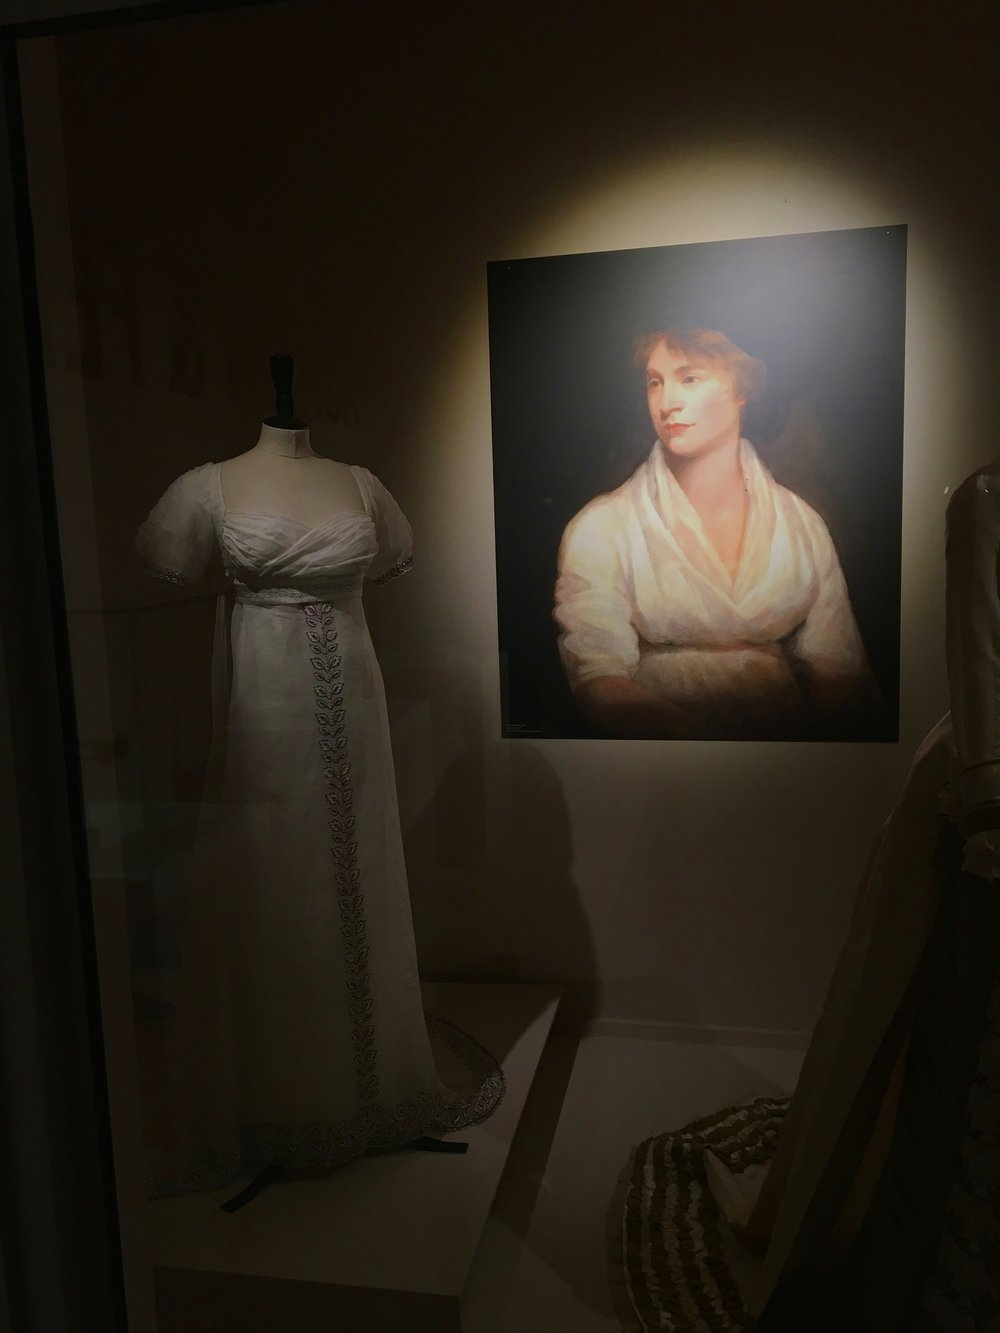 White Muslin gown with Train from the 1800s  'National Museums NI'